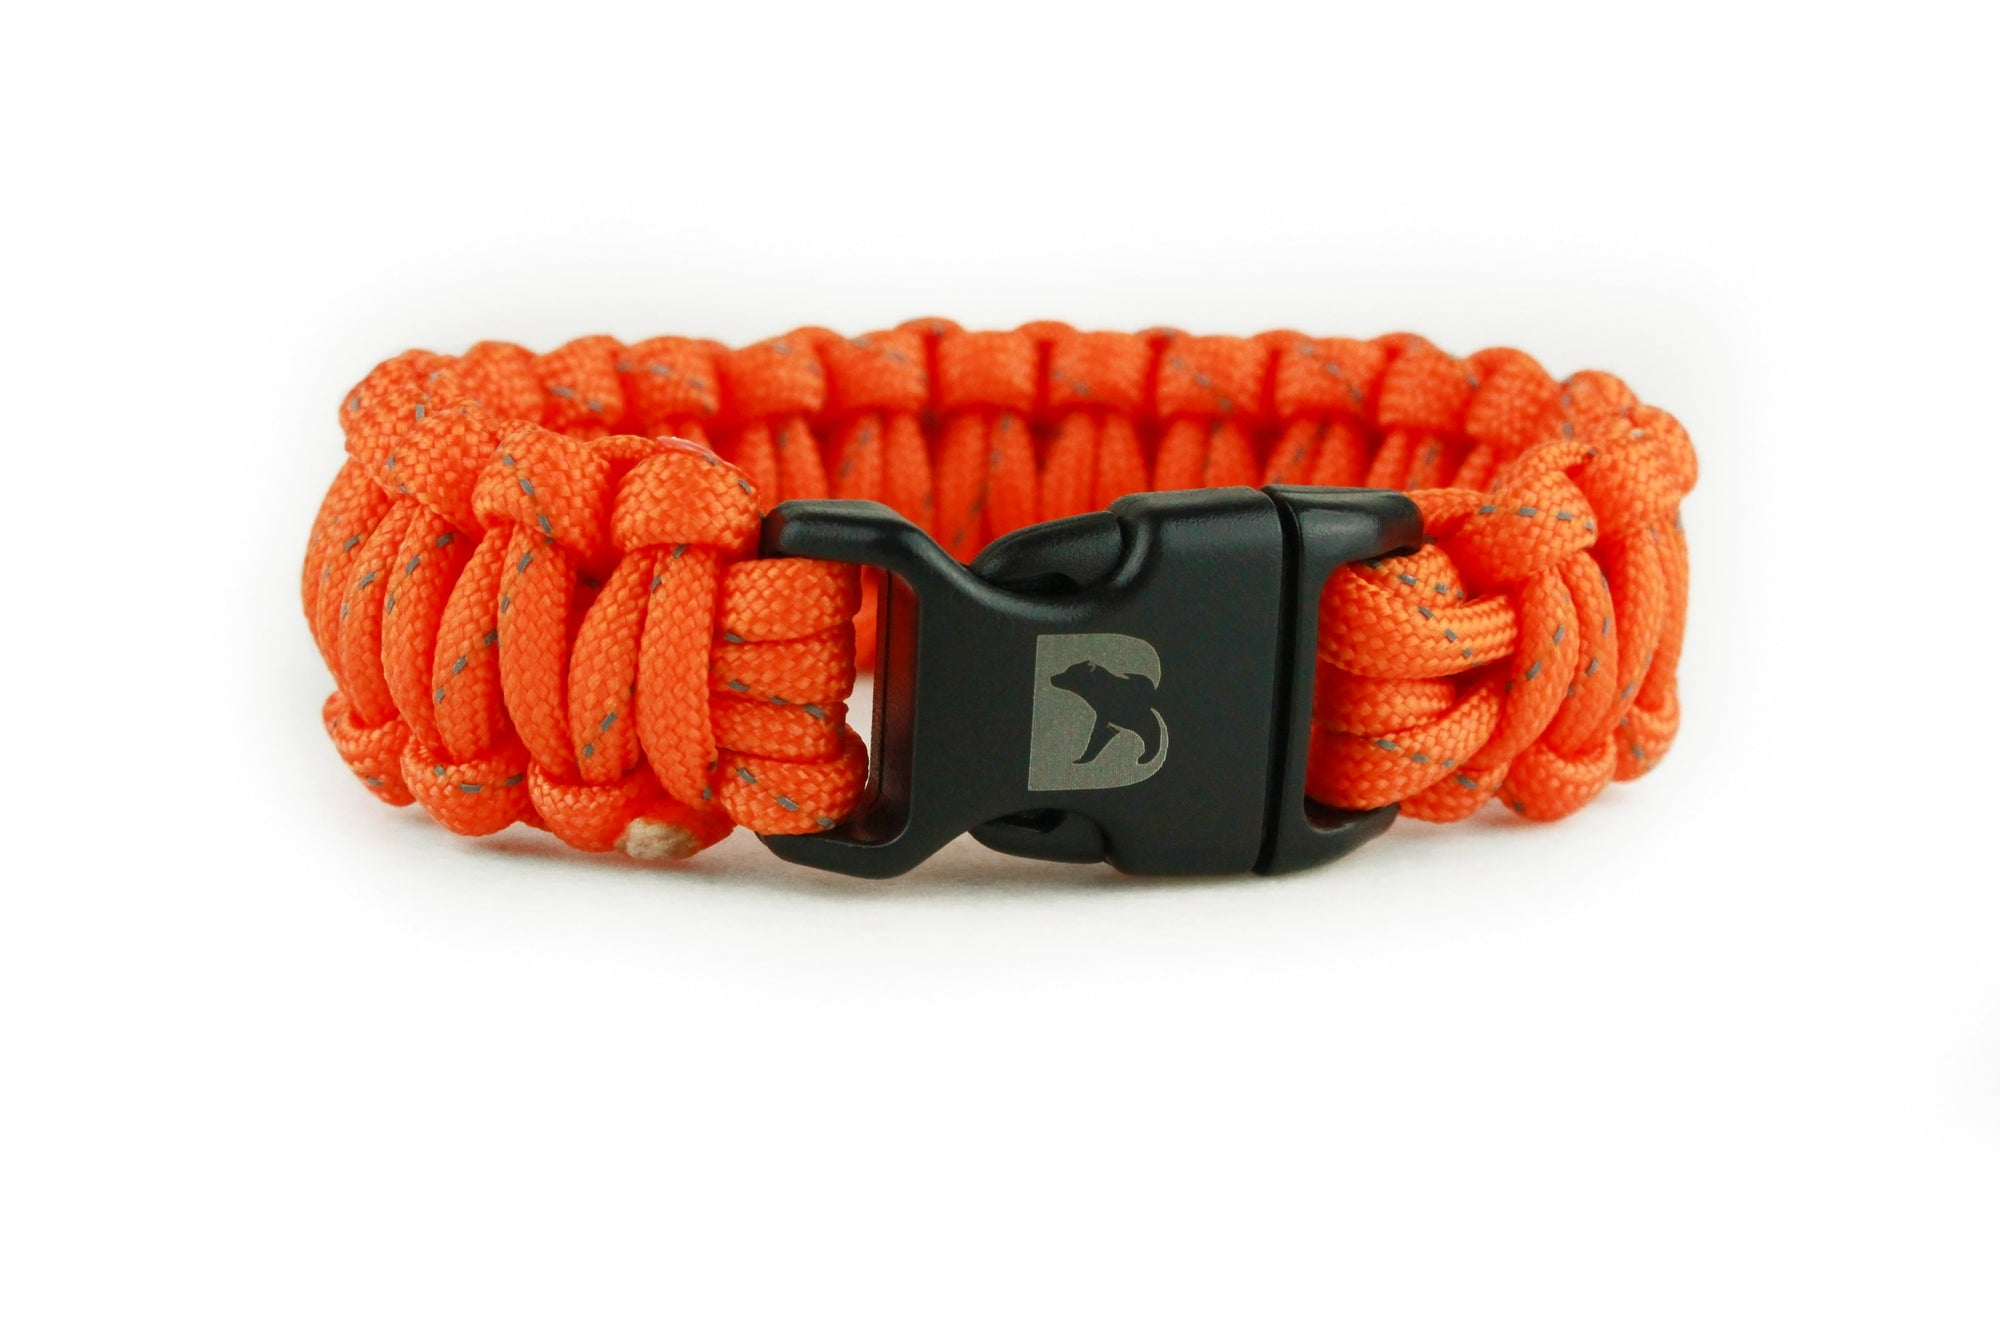 Reflective Orange Paracord Bracelet-Paracord Bracelet-Bearbottom Clothing